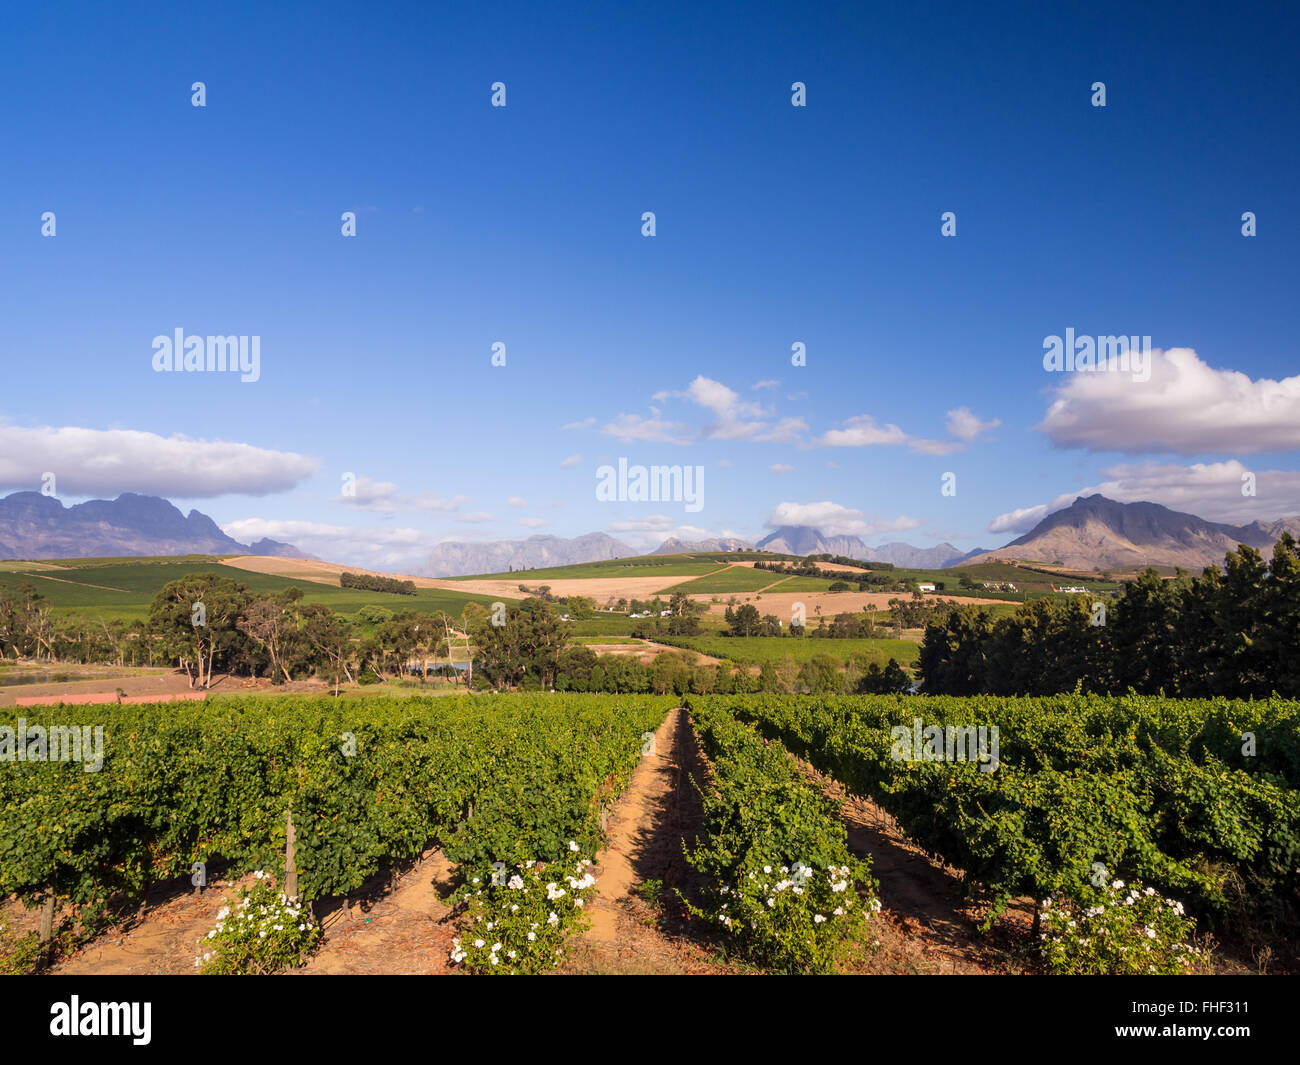 Vineyard in Stellenbosch, Western Cape, South Africa. - Stock Image